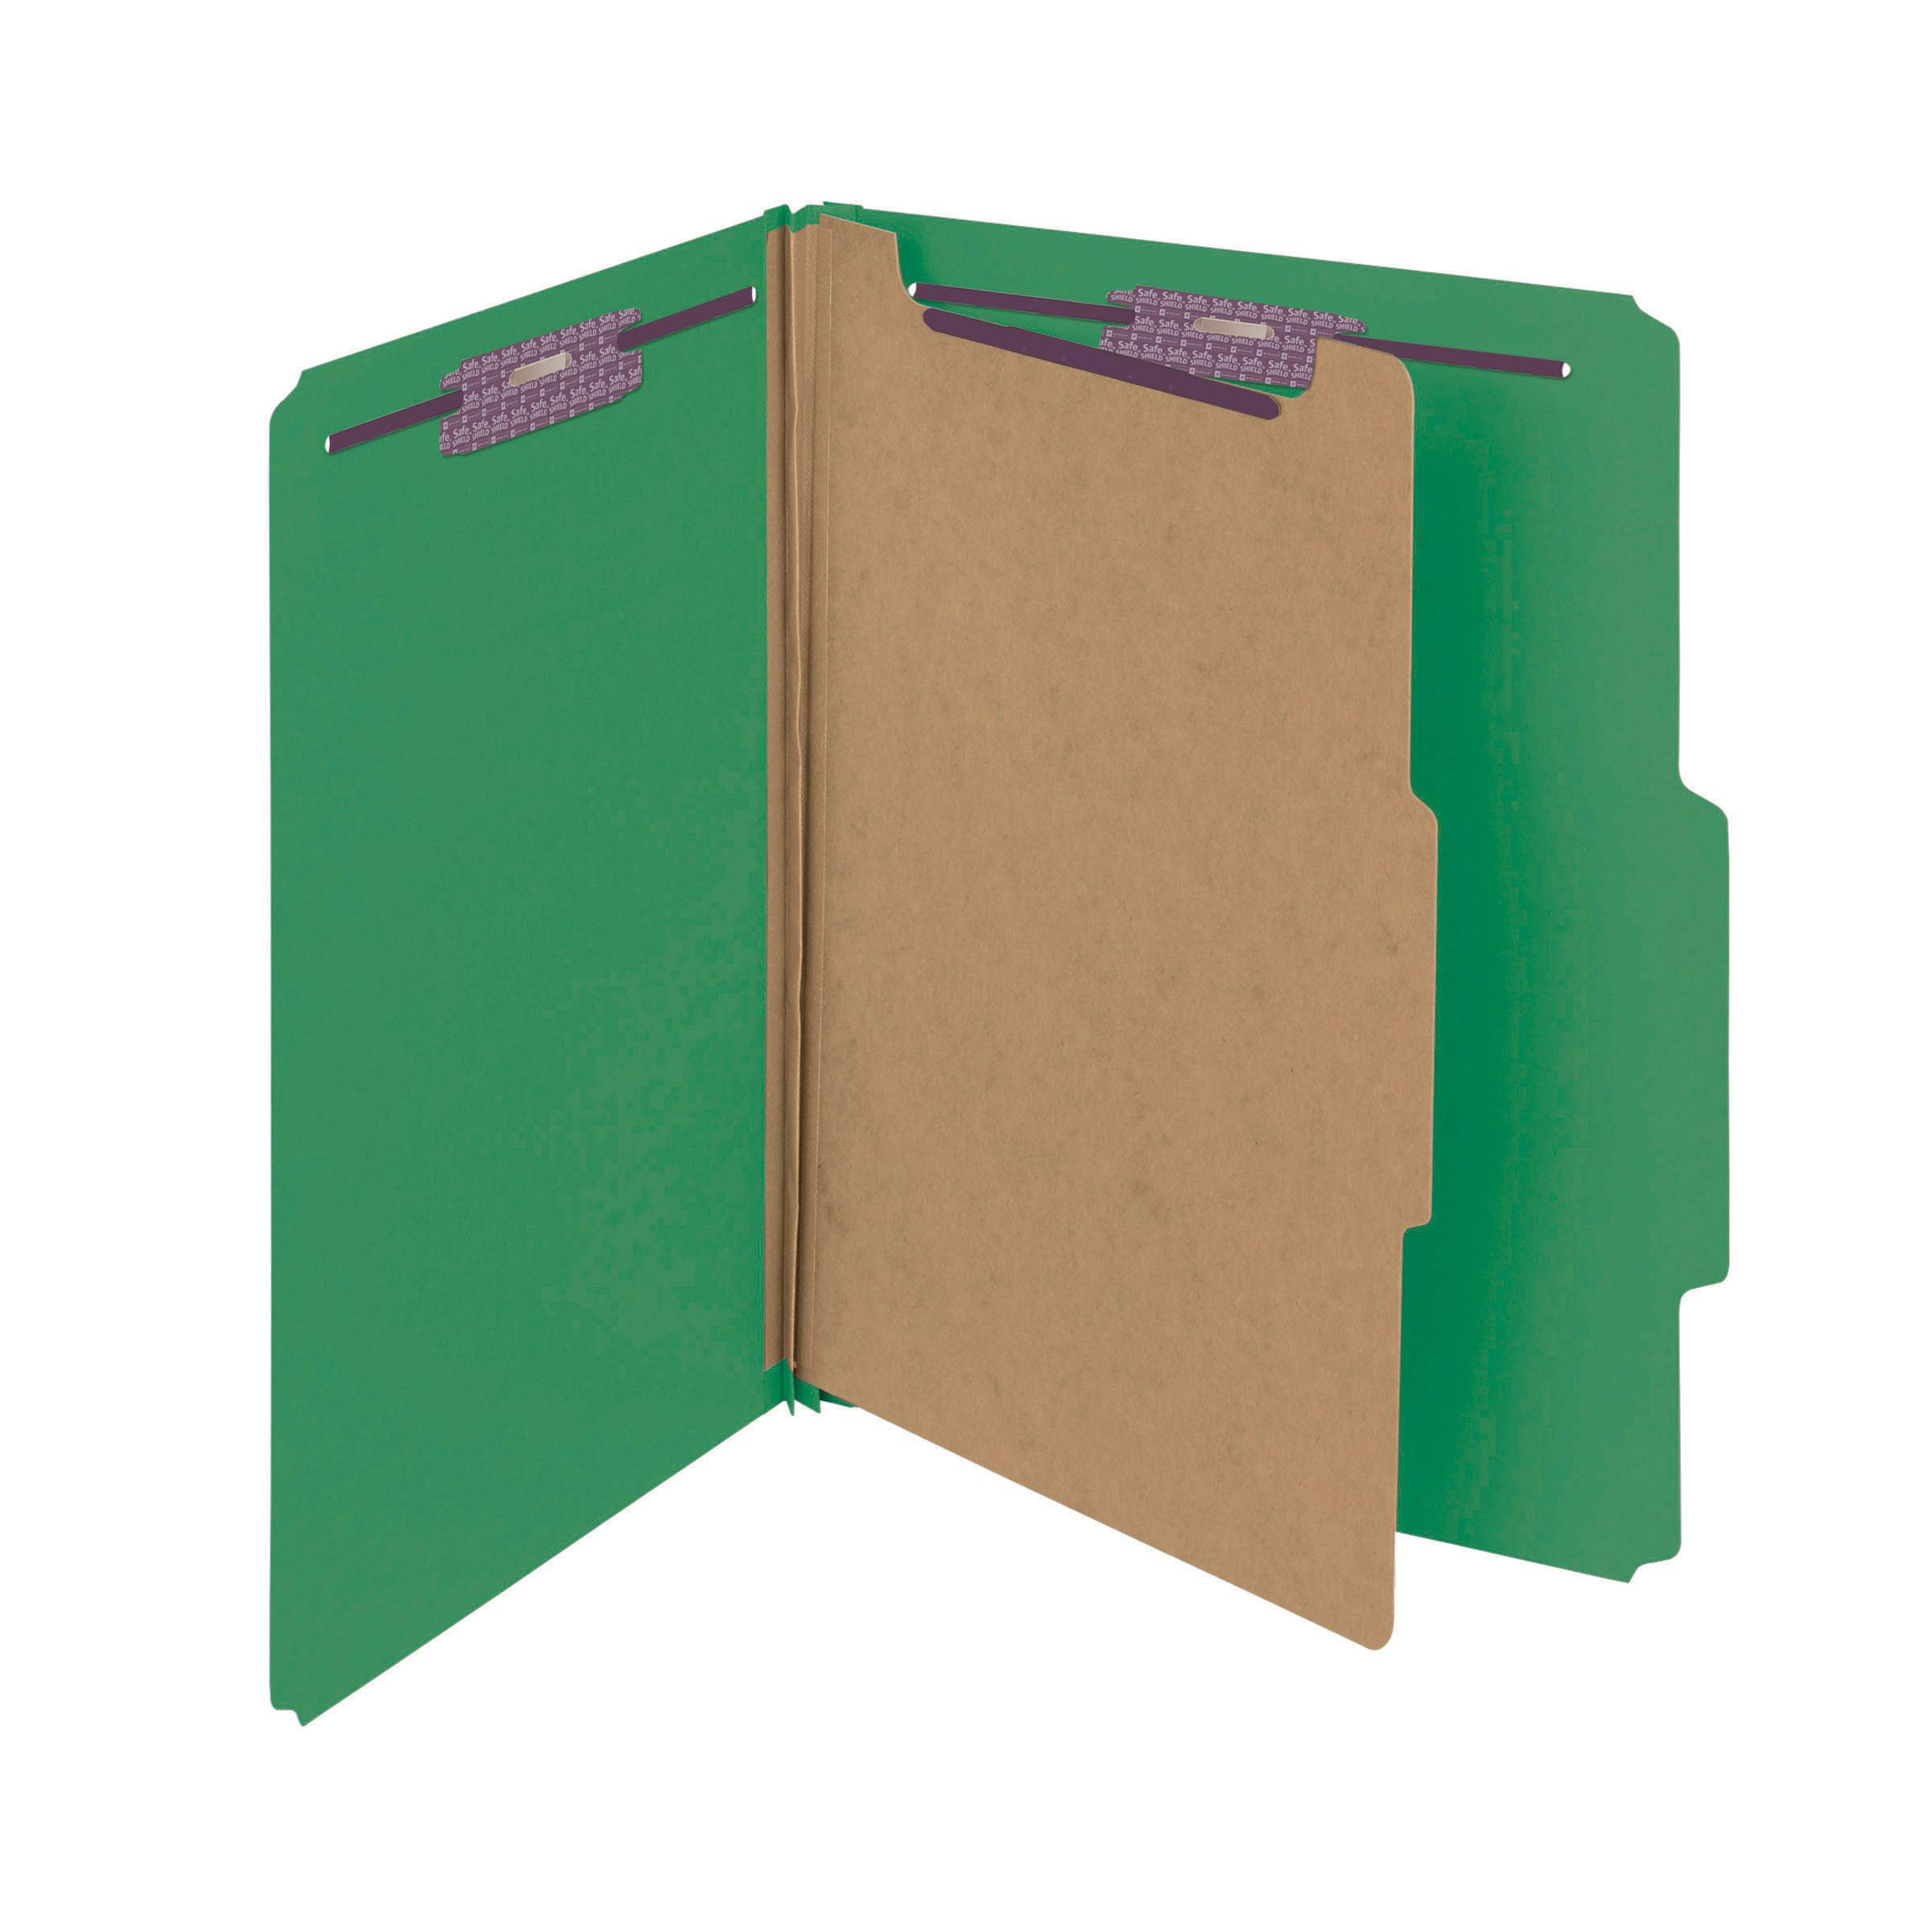 Smead Pressboard Classification File Folder with SafeSHIELD Fasteners, 1 Divider, 2'' Expansion, Letter Size, Green, 10 per Box (13733) by Smead